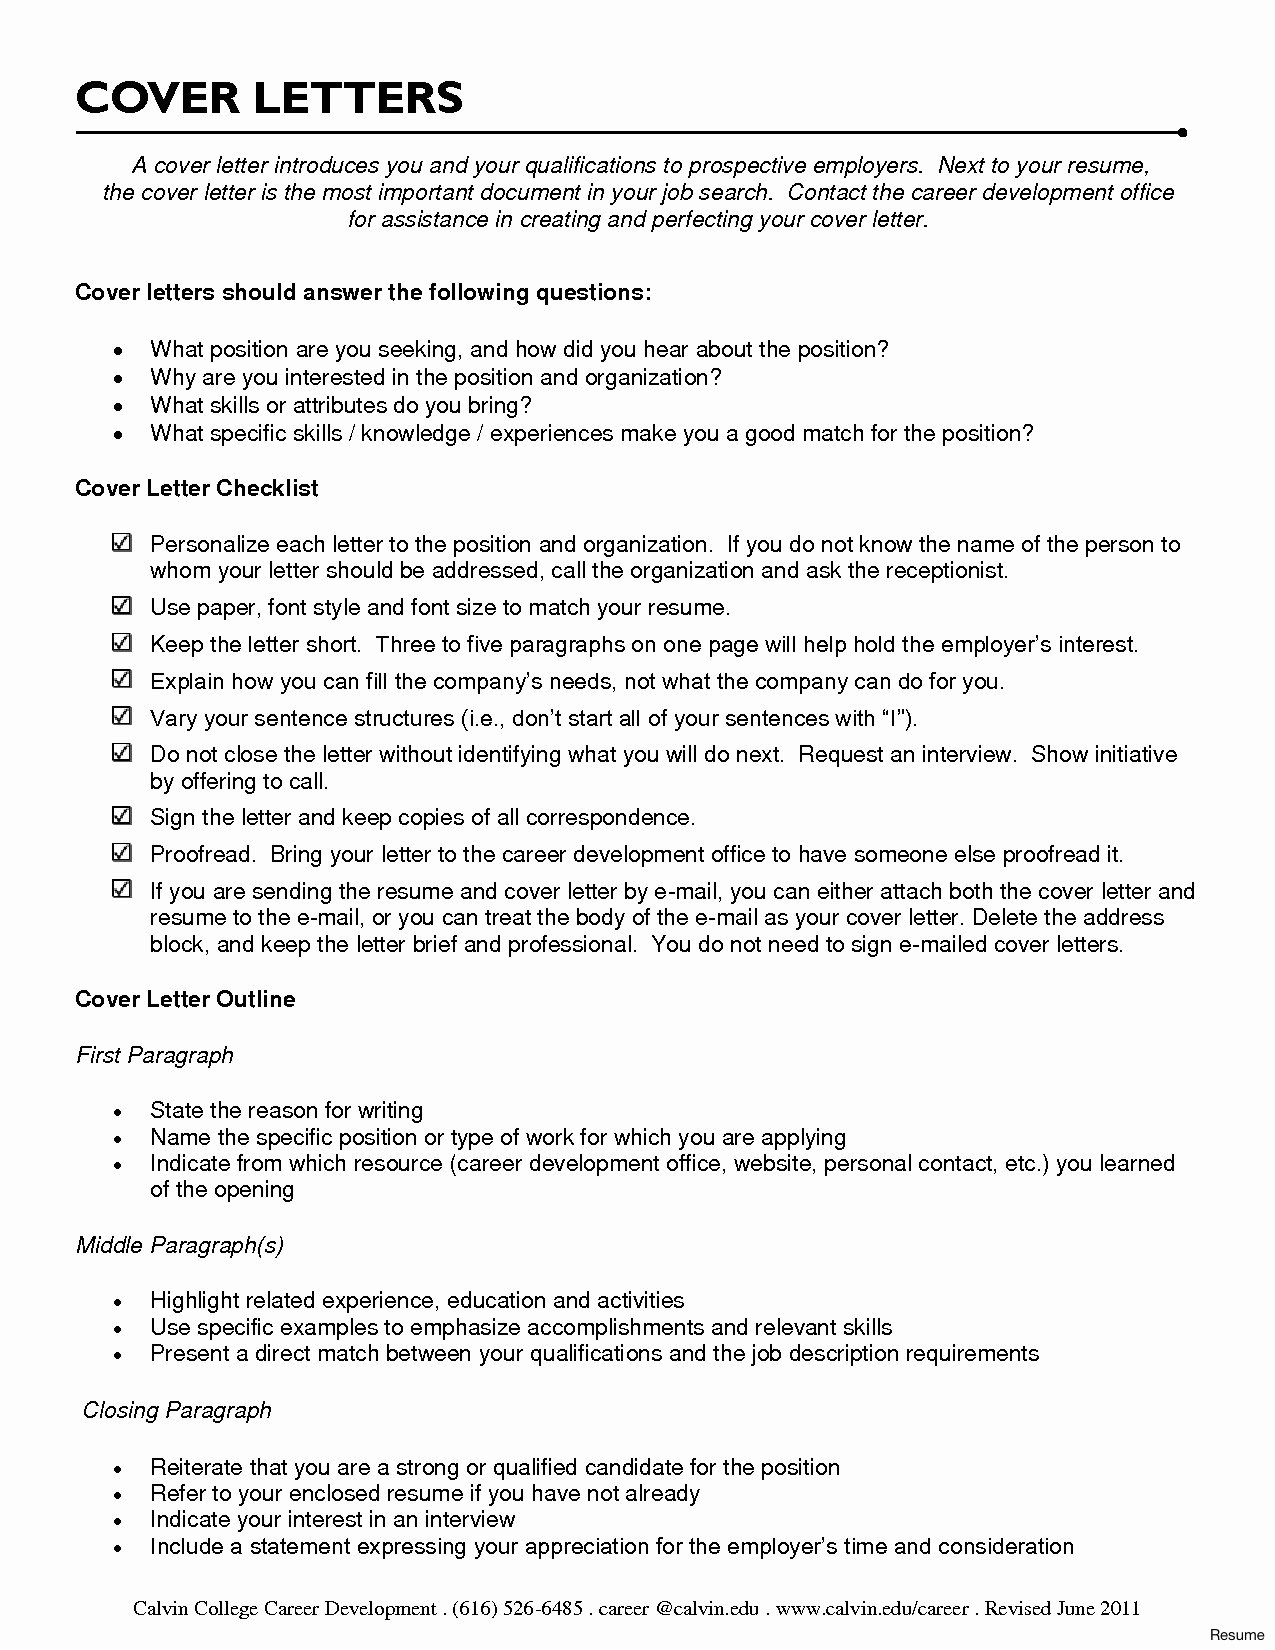 Cover Letter for Summer Camp Summer Camp Counselor Cover